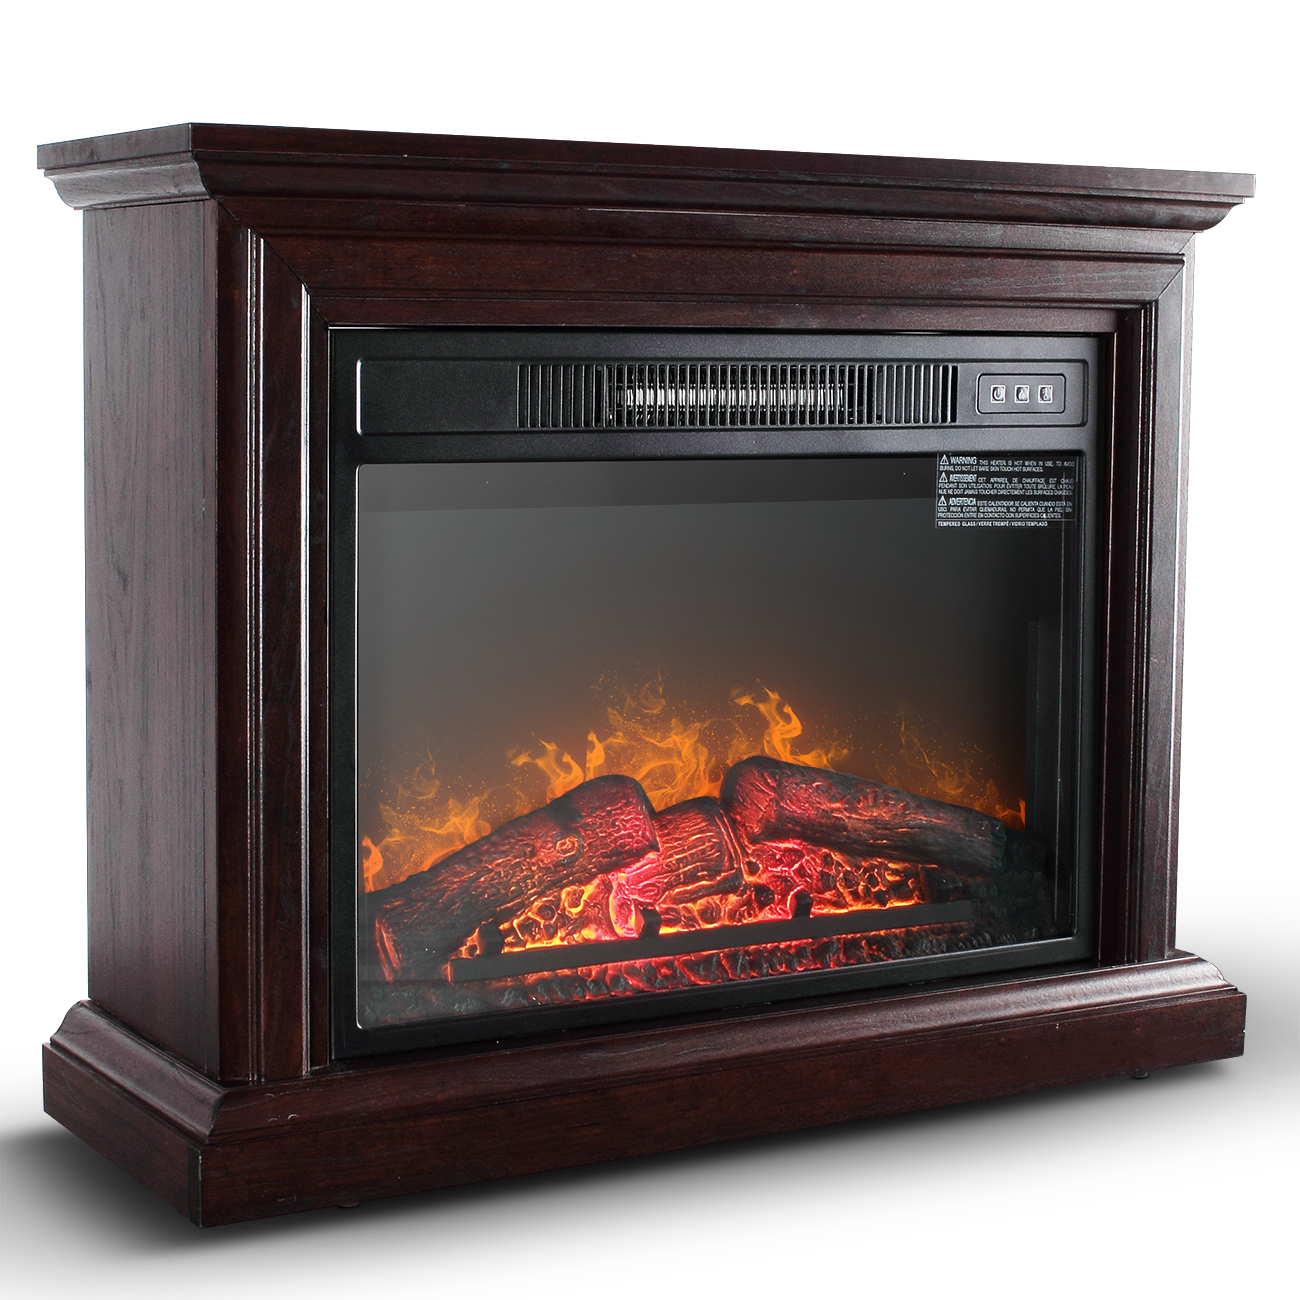 Della 1400W Deluxe Infrared Quartz Fireplace Heater Indoor Flame Wood Log Caster w/ Remote Control, Oak